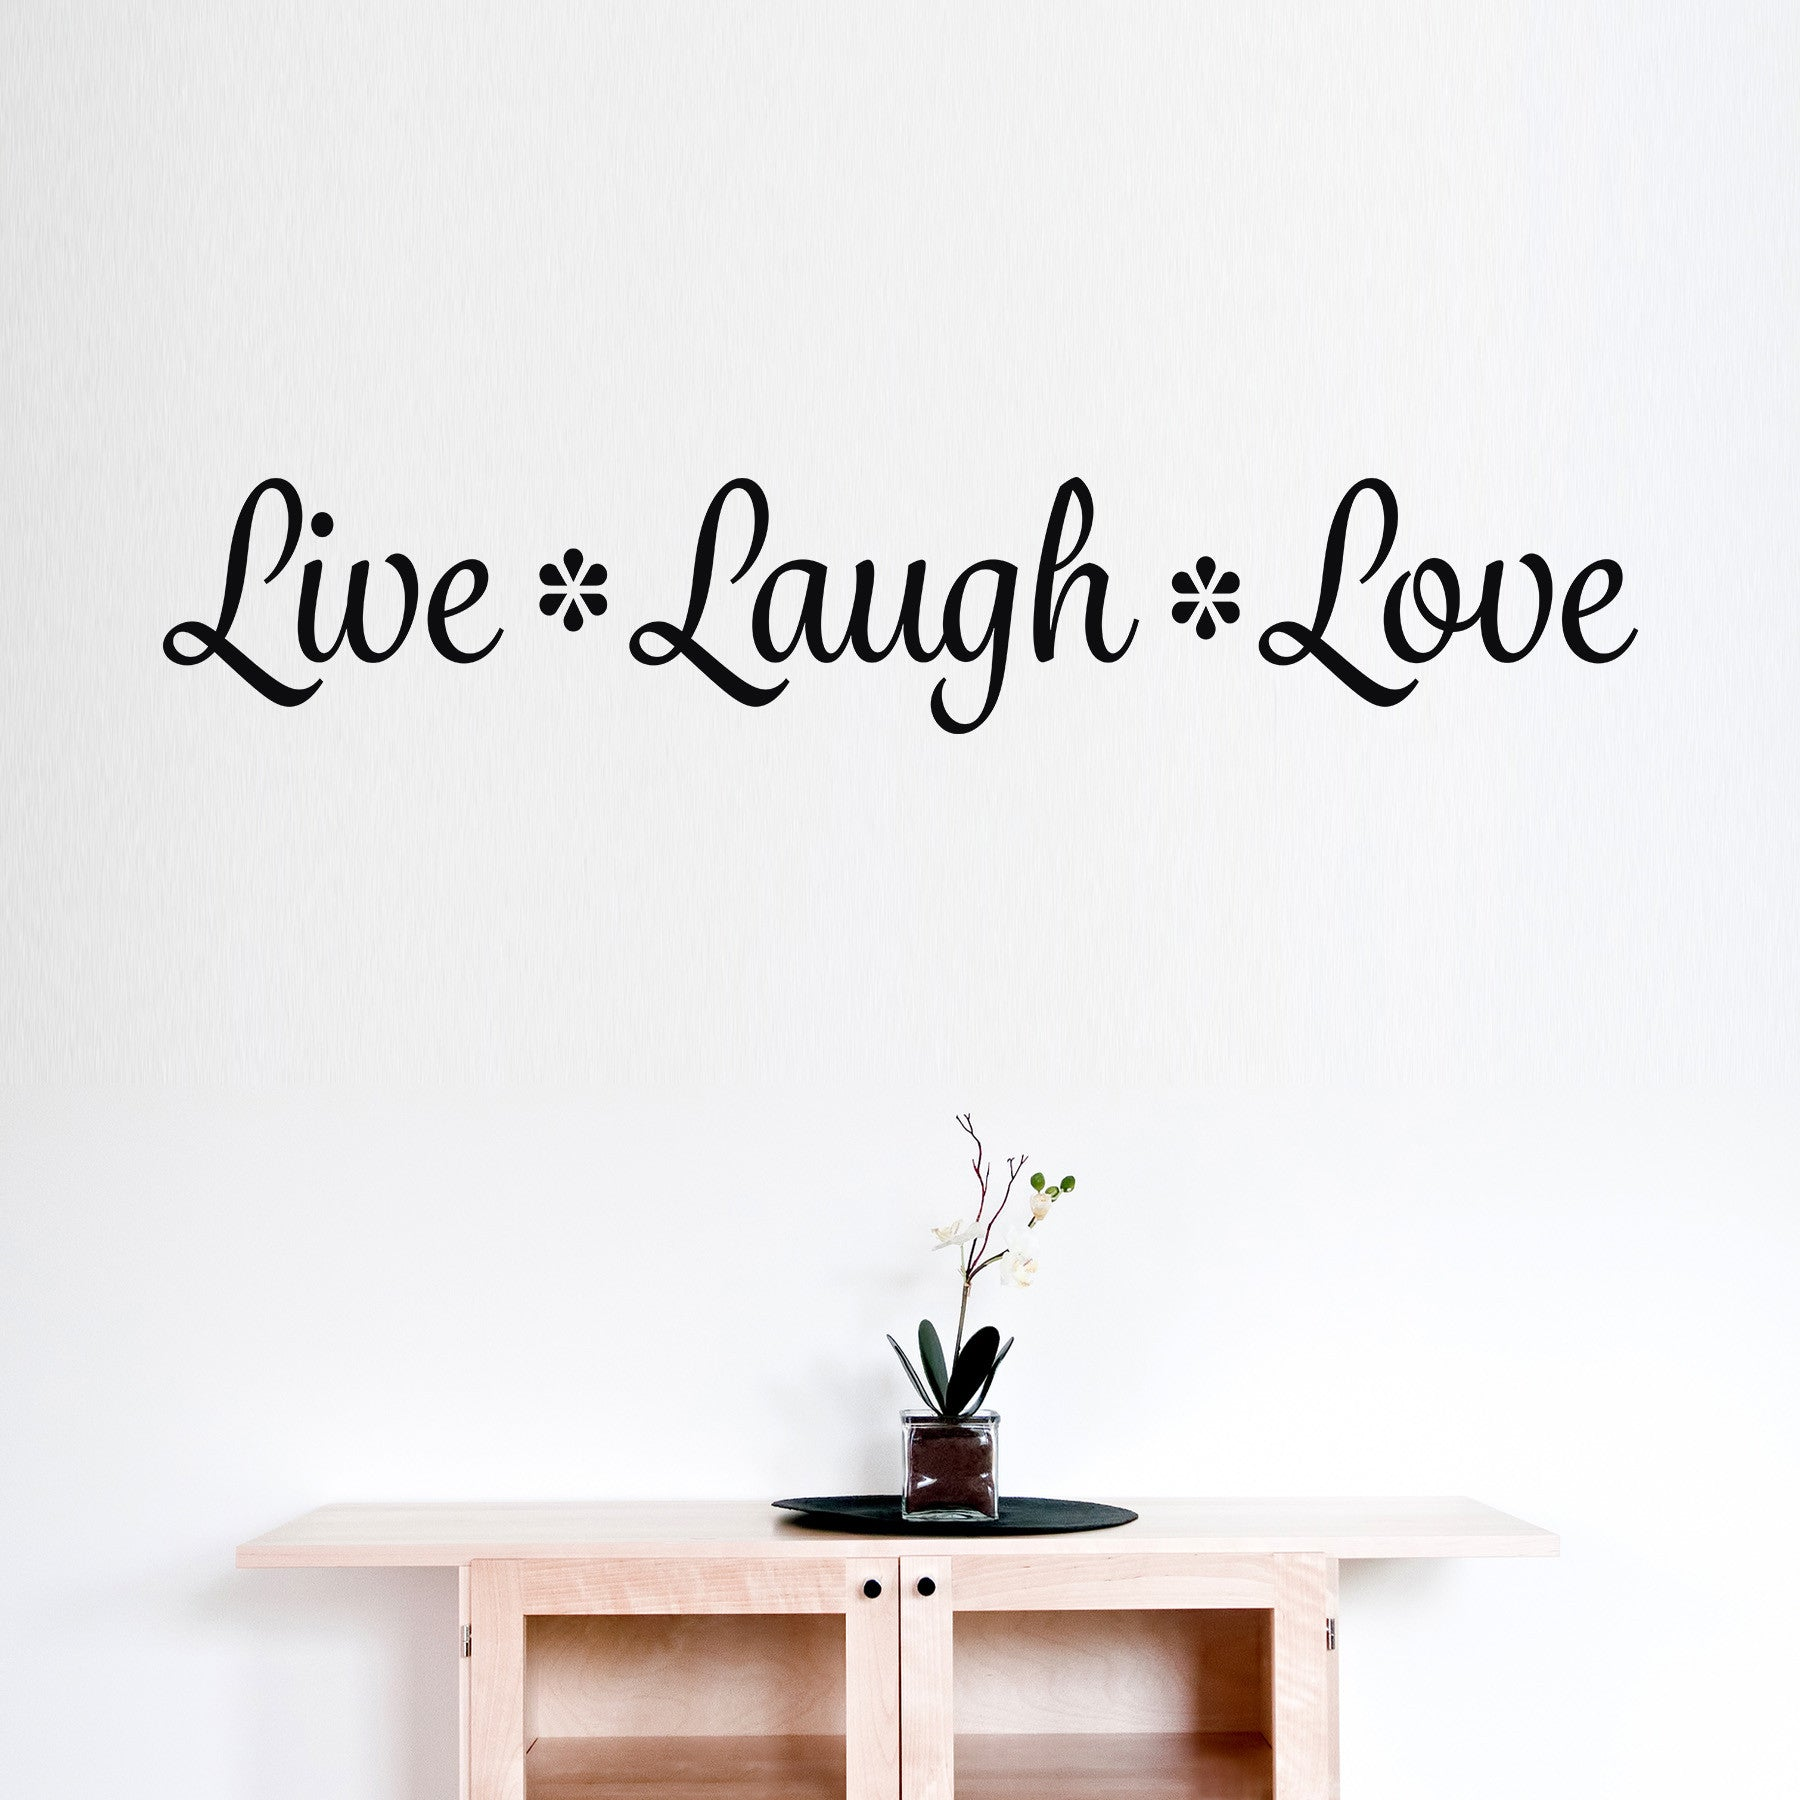 Live Laugh Love Quote Live Laugh Love Wall Decal Wall Quote  Deecal Frenzy  Deecal